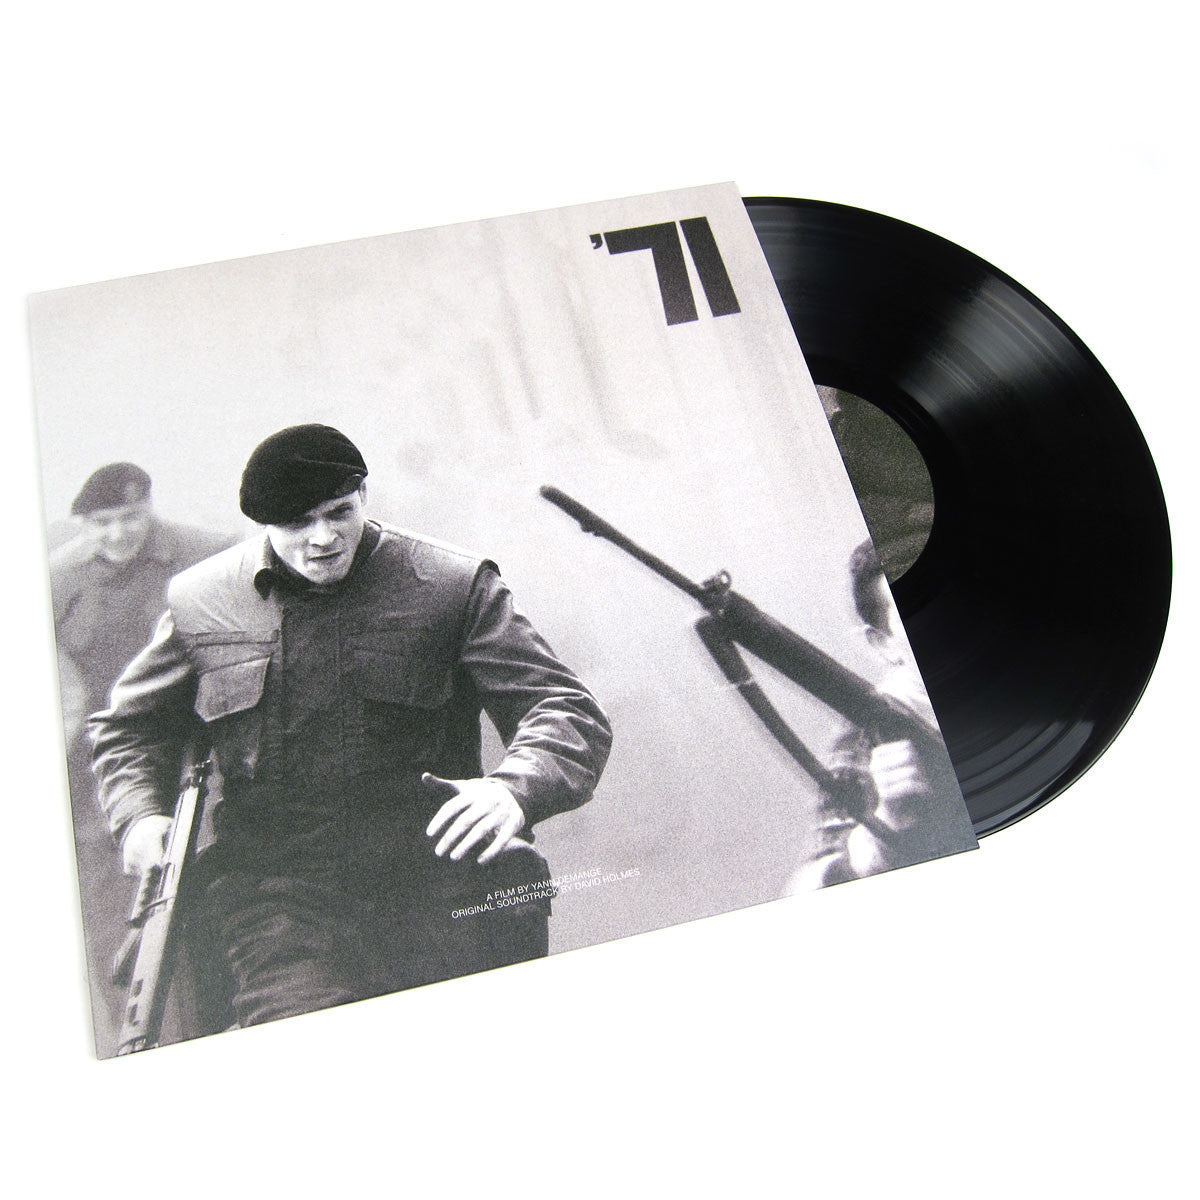 David Holmes: 71 Original Soundtrack (Free MP3) Vinyl LP